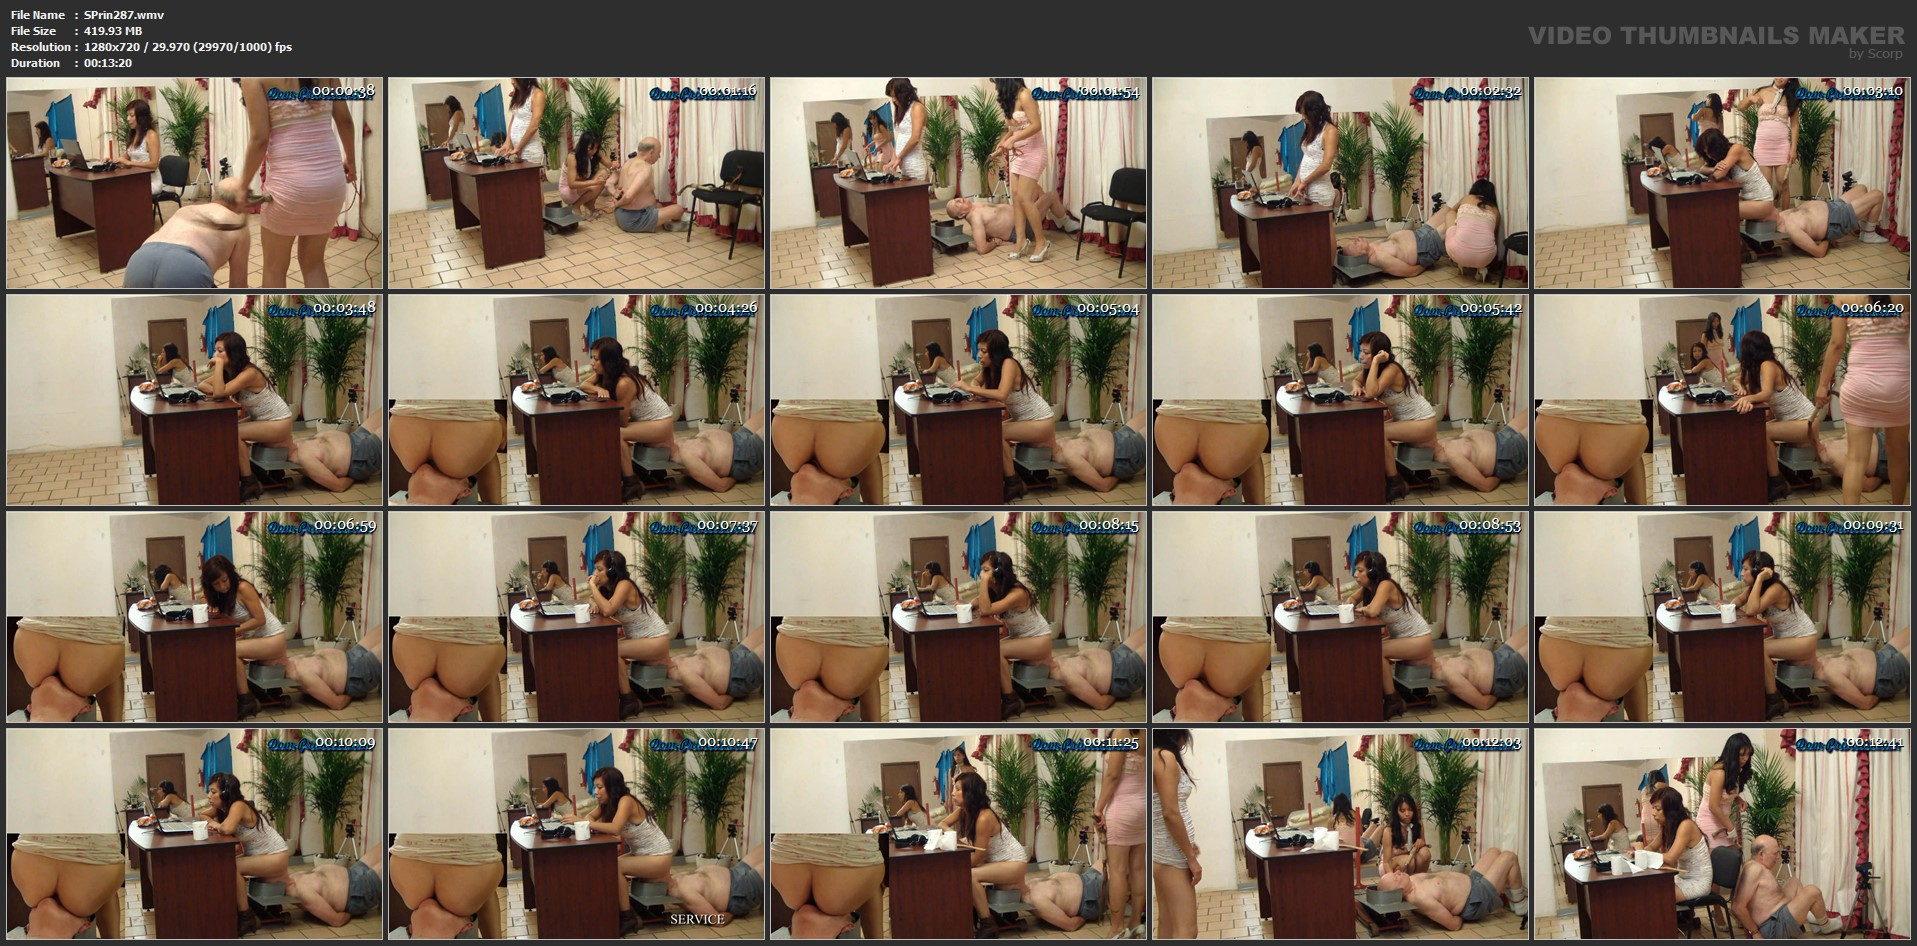 [SCAT-PRINCESS] Another Day in the Office Part 14 Jessy [HD][720p][WMV]